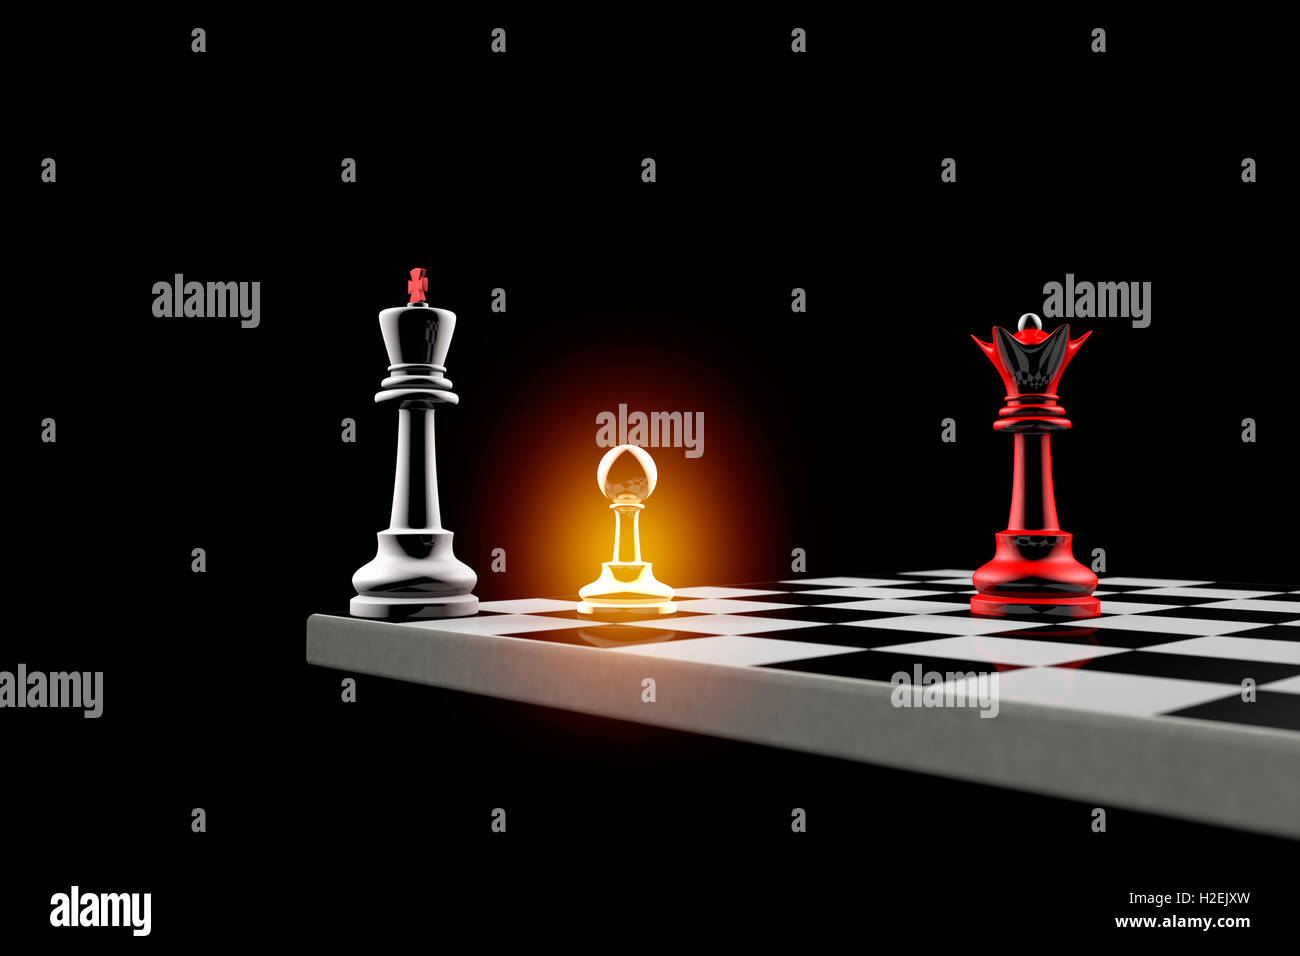 Pawn defends the King. It is a metaphor (political balance). - Stock Image